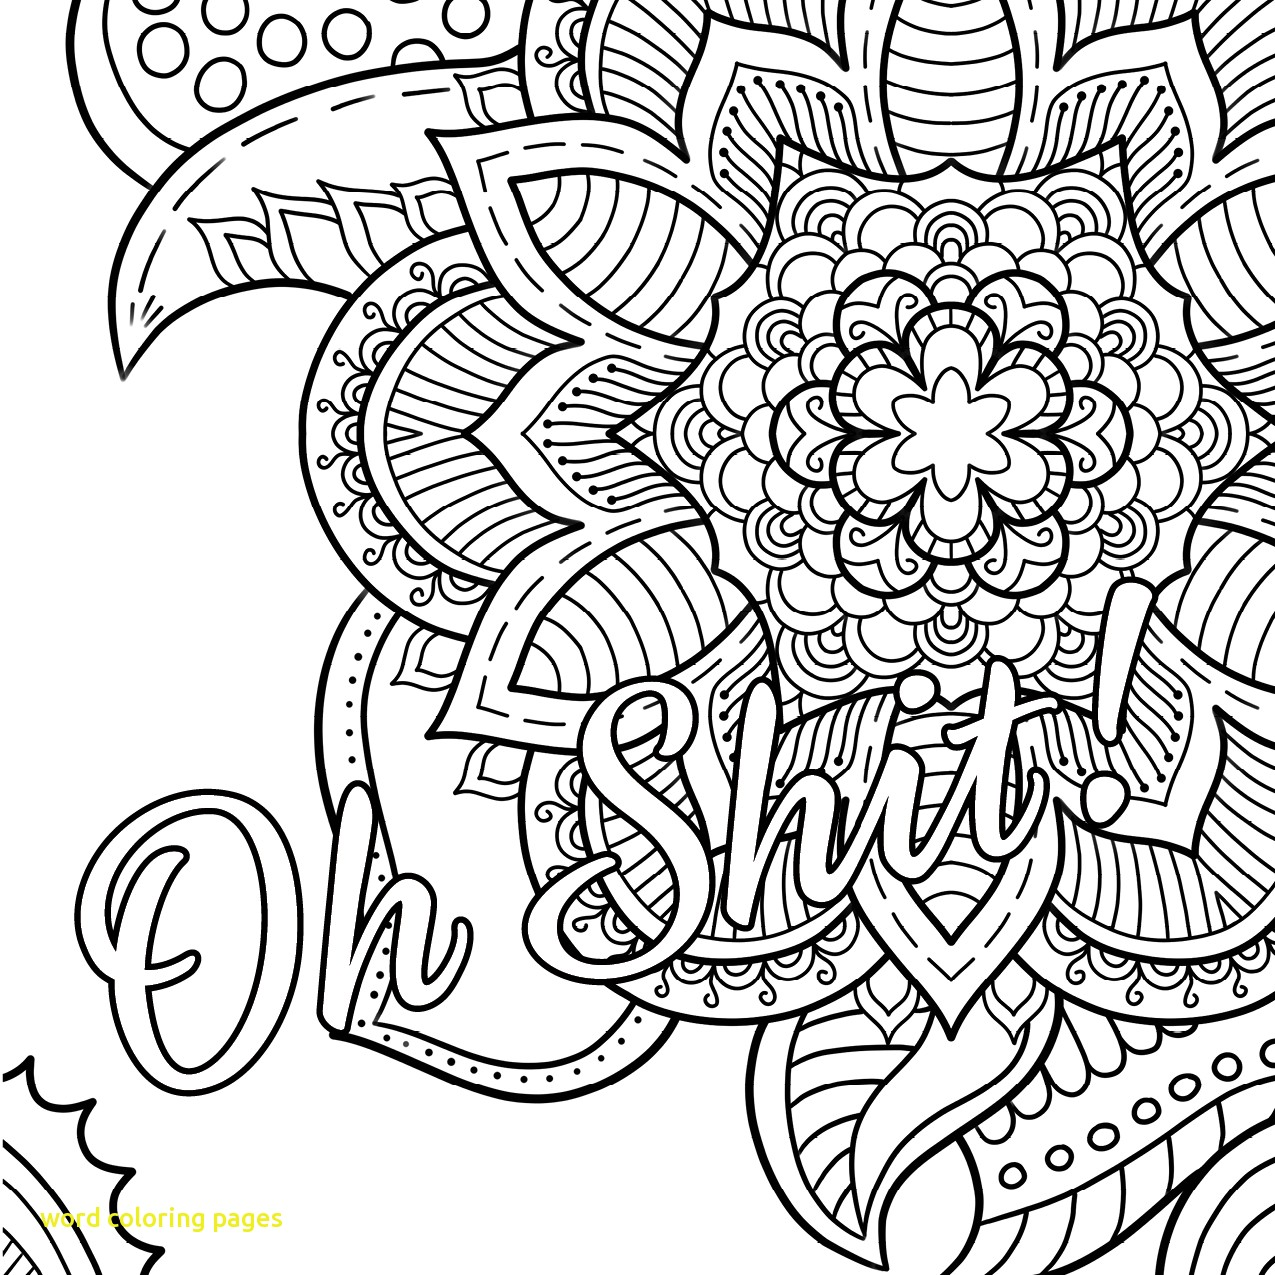 1275x1275 Word Coloring Pages With Party Word Coloring Pages Grown Ups